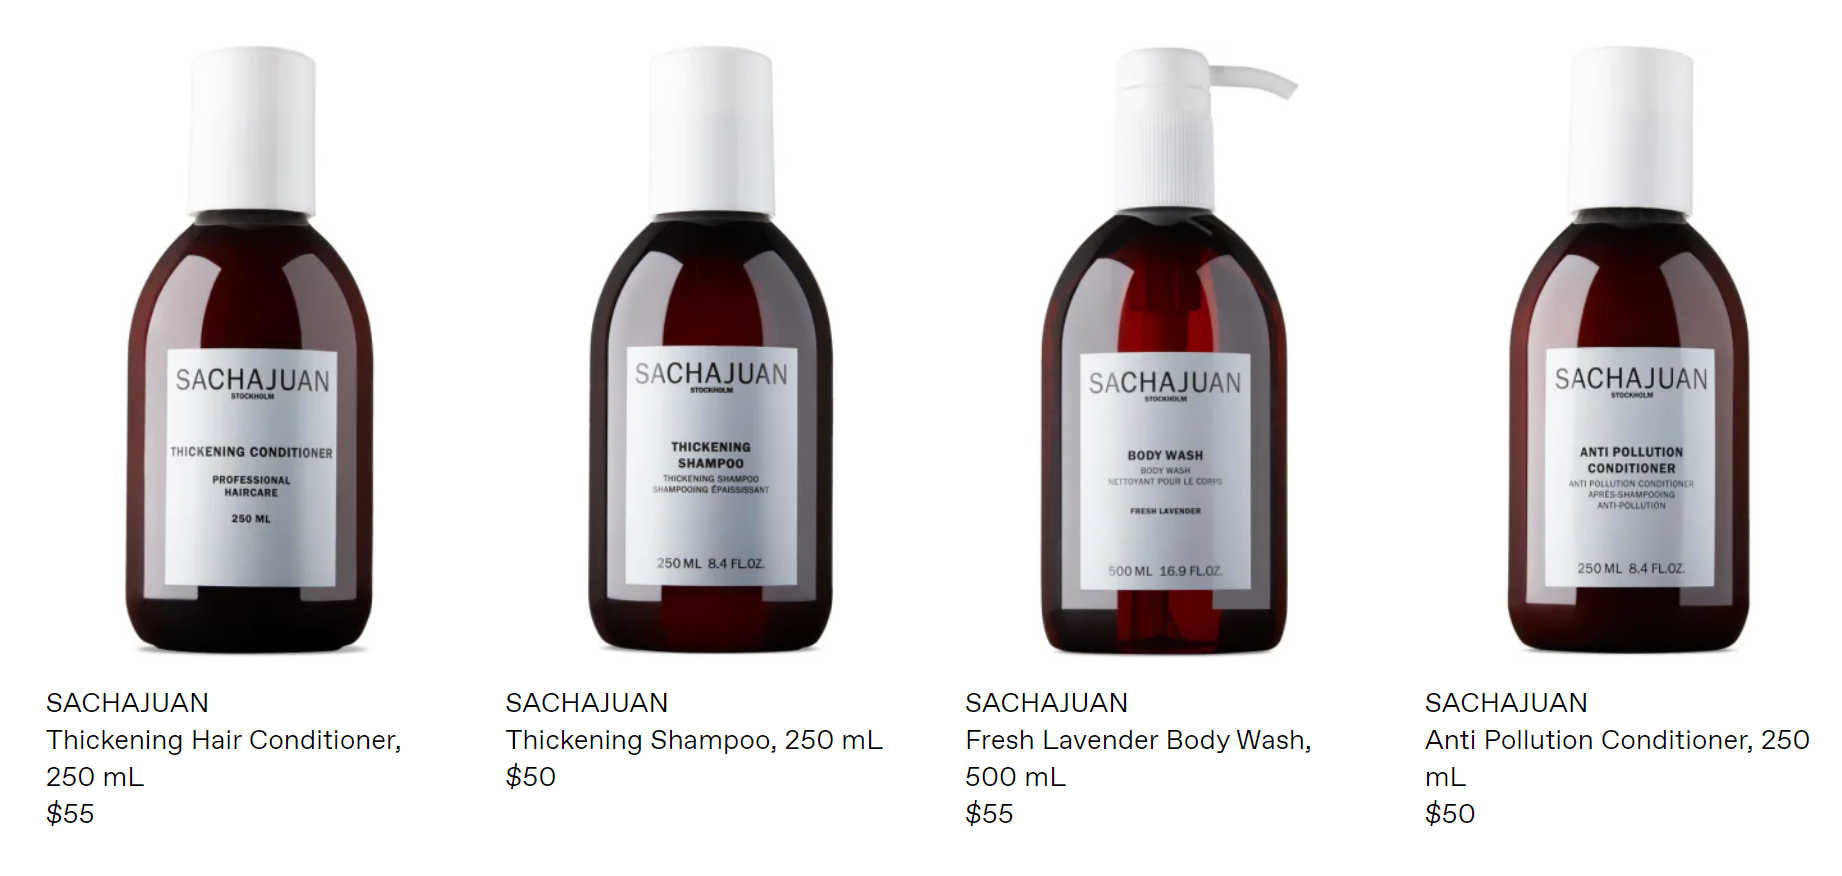 sachajuan-swedish-niche-wash-care-from-40-ocean-fluffy-spray-2021-2-14